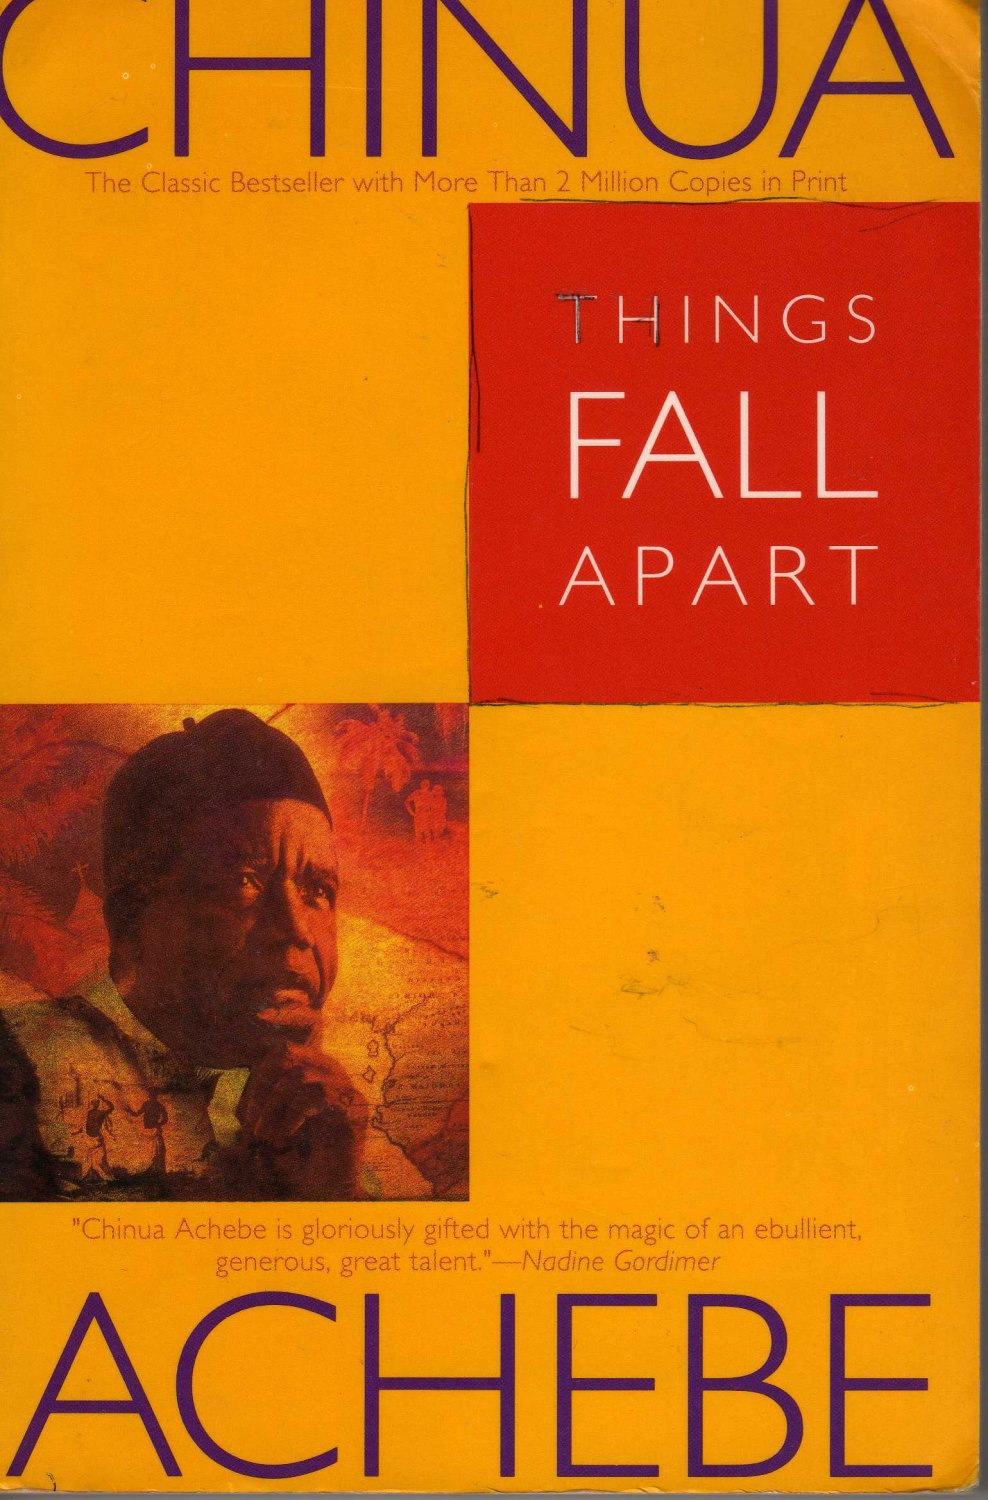 an analysis of african society life in things fall apart by chinua achebe Special mid-year issue, august 2012 76-79 impact of colonial powers: an analysis of achebe's things fall apart and arrow of god chinua achebe's novels have flawlessly depicted the life of the igbo society under the colonial rule.